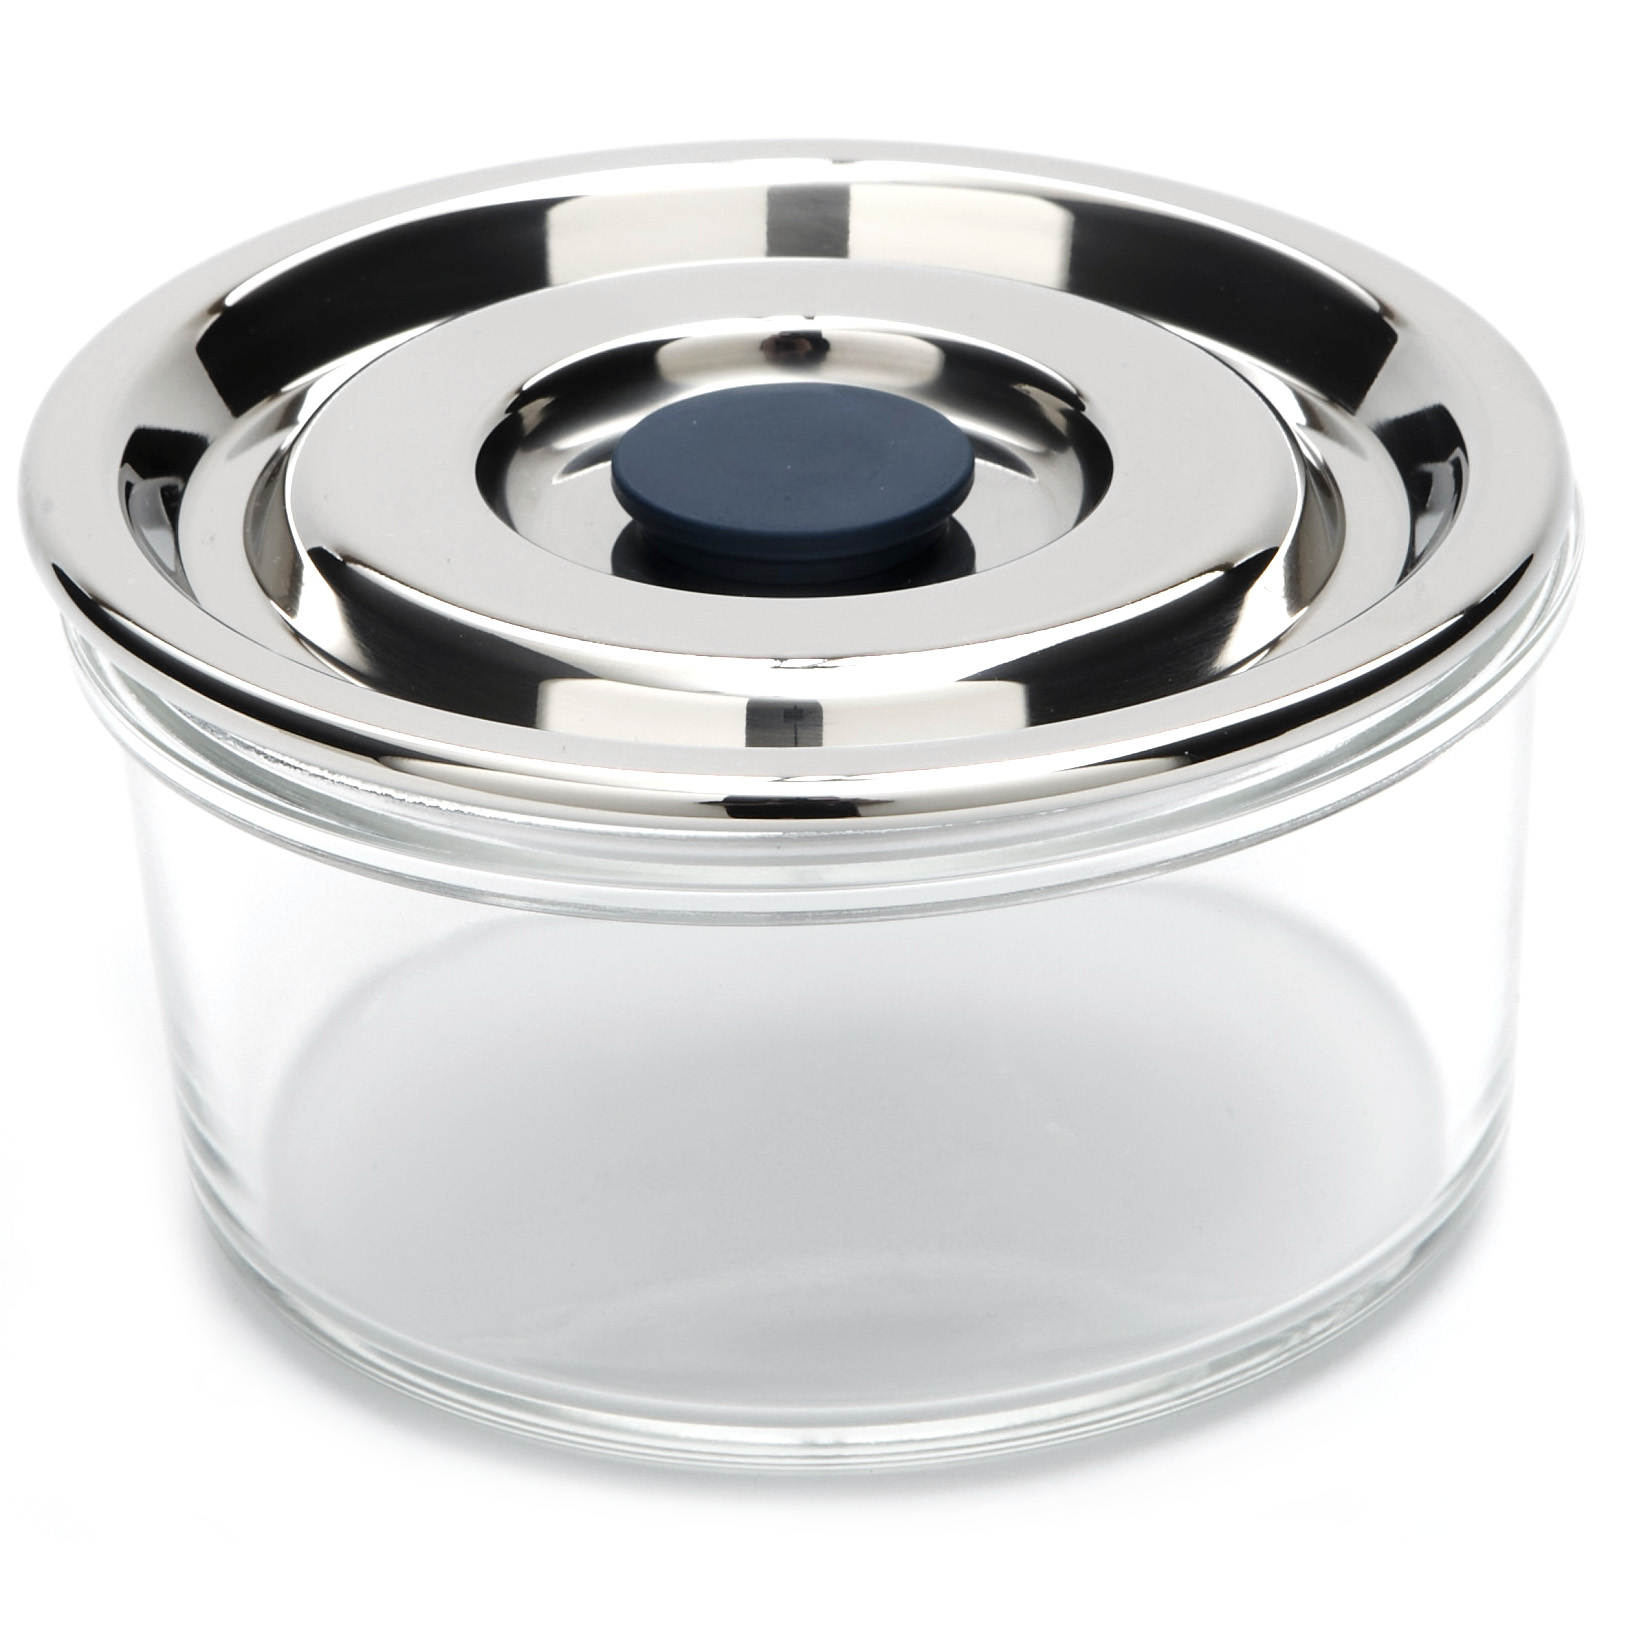 Onyx Medium Round Airtight Glass Container with 18/8 Stainless Steel Lid